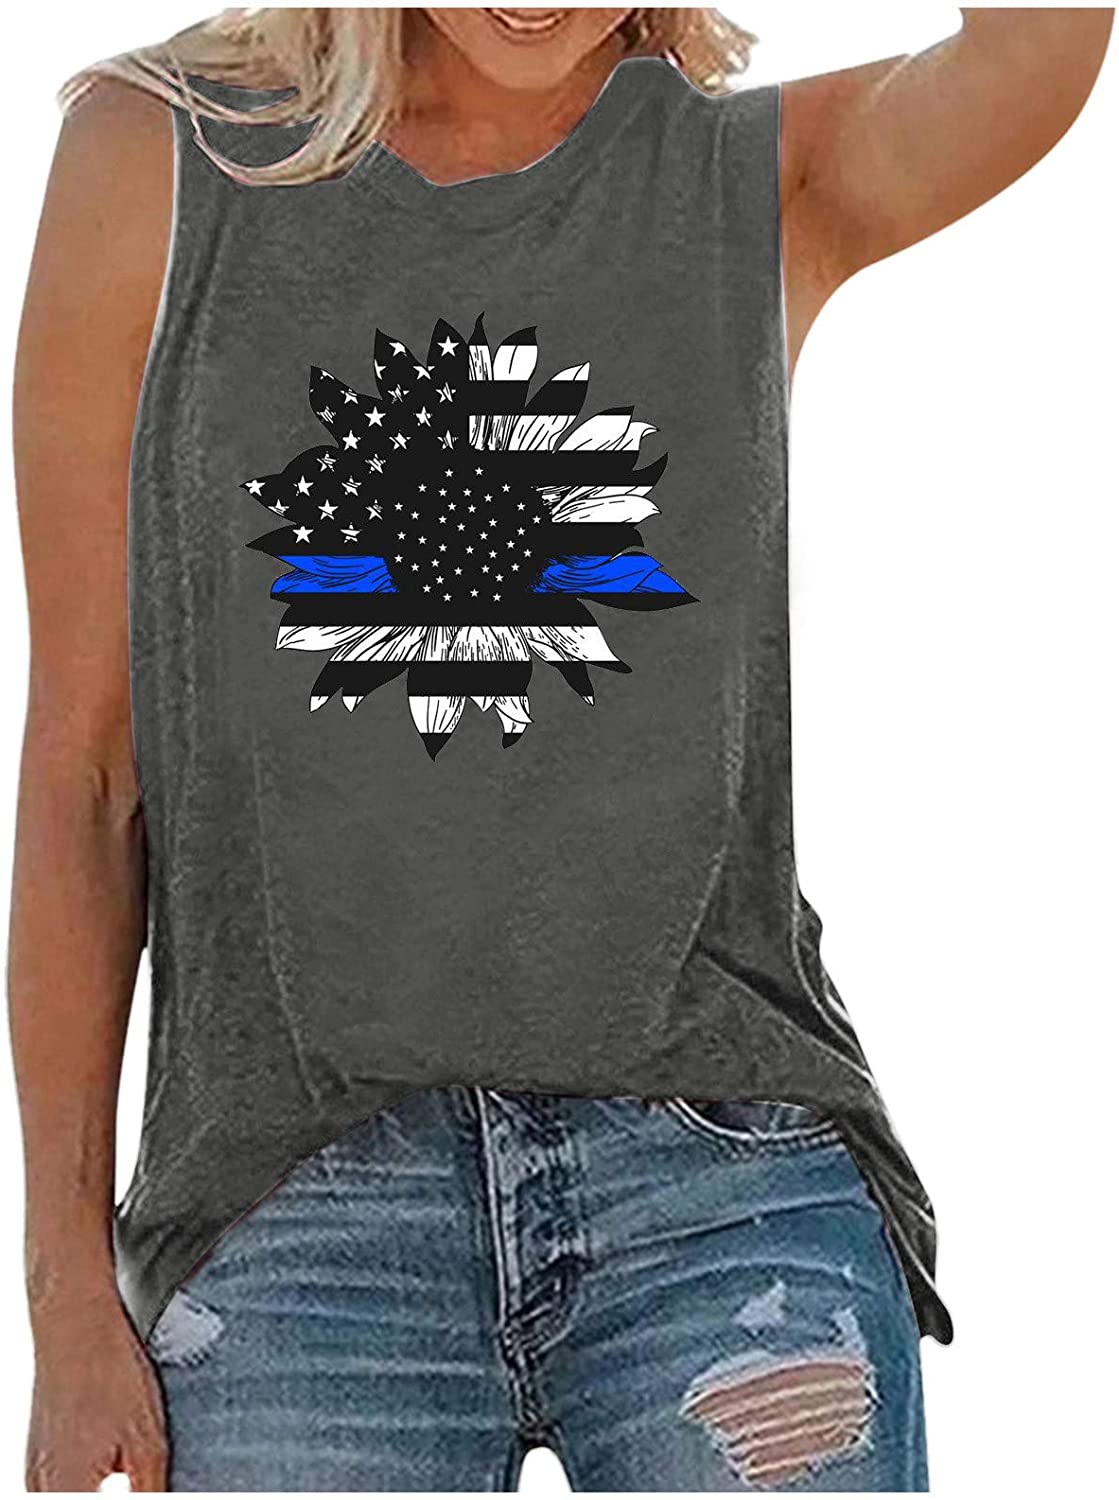 Womens Tops,Womens Tank Tops for Independence Day Women Casual Printing Shirts Short Sleeve Loose Tee Tops Tunic Blouse